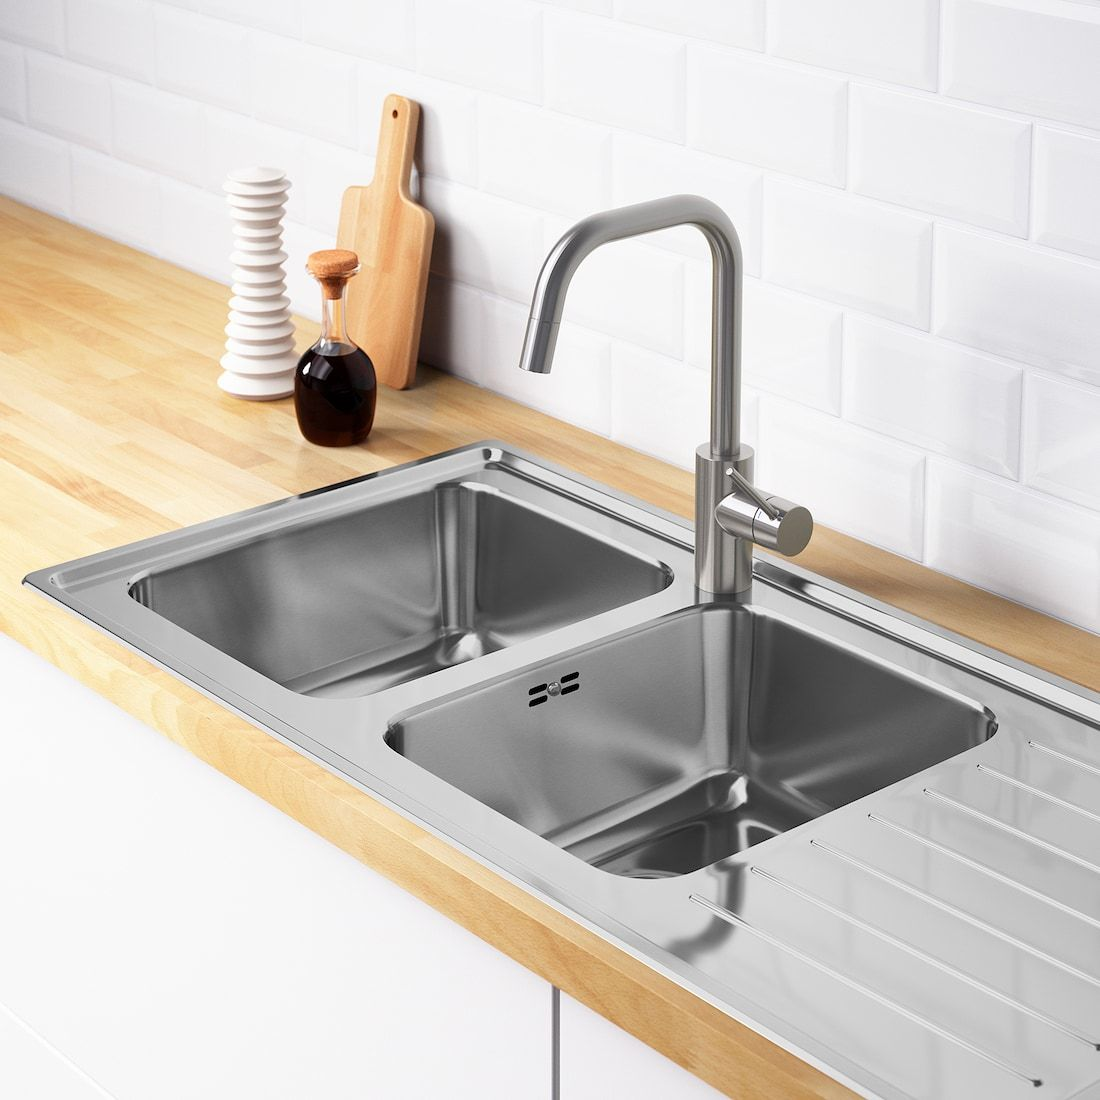 Vattudalen Inset Sink 2 Bowls With Drainboard Stainless Steel Ikea Kitchen Sink Design Inset Sink Sink